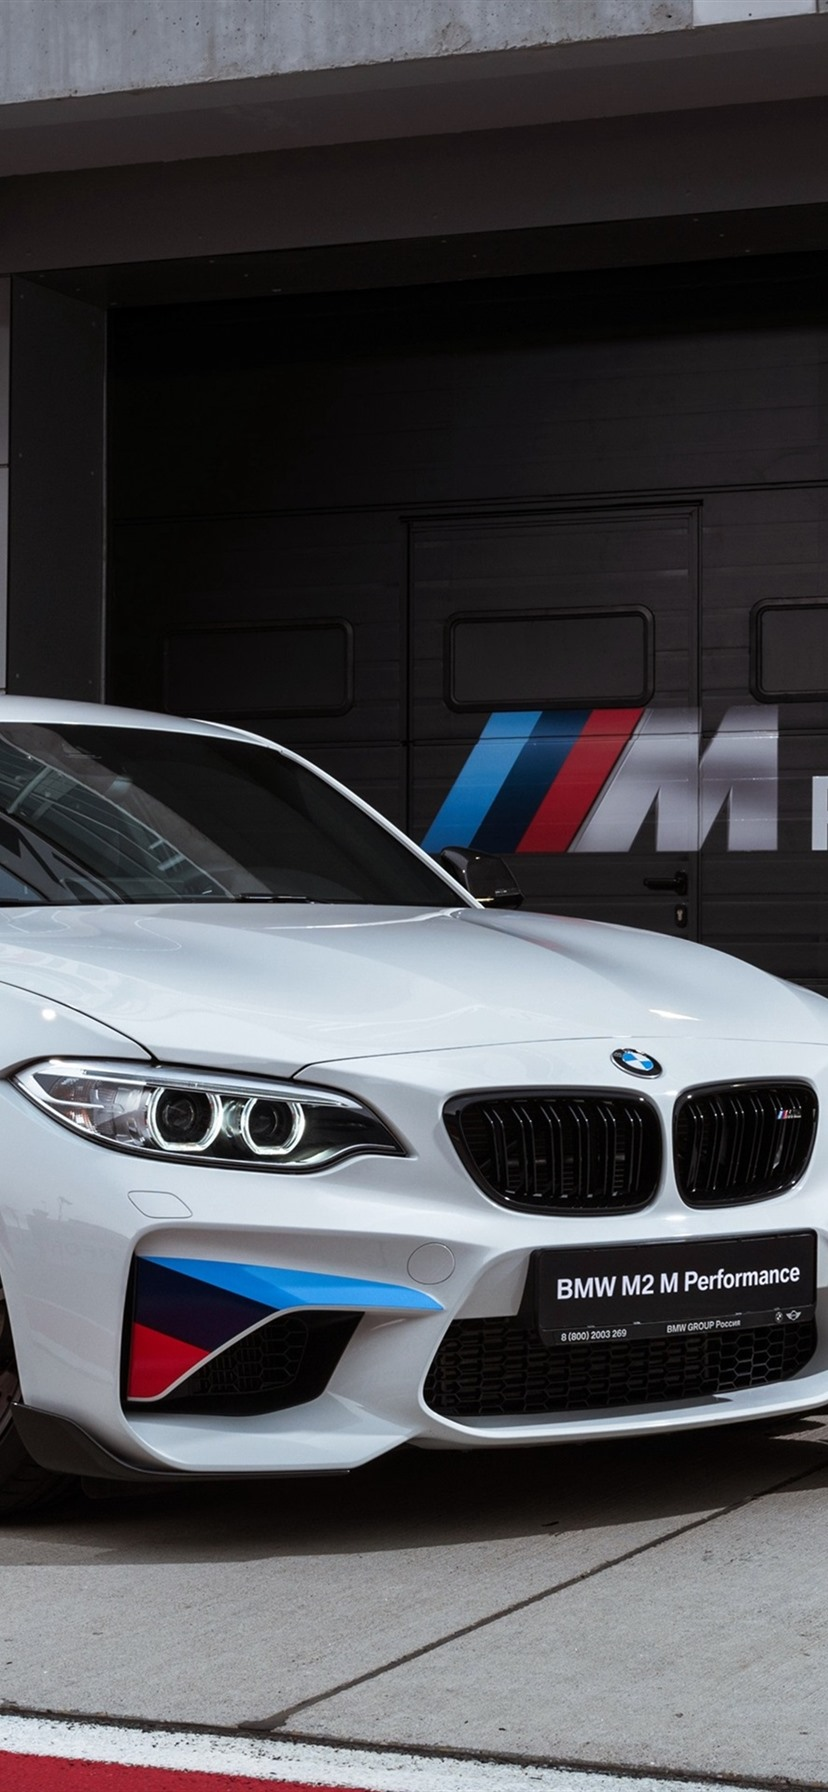 Bmw M2 F87 White Coupe 1080x1920 Iphone 8 7 6 6s Plus Wallpaper Background Picture Image